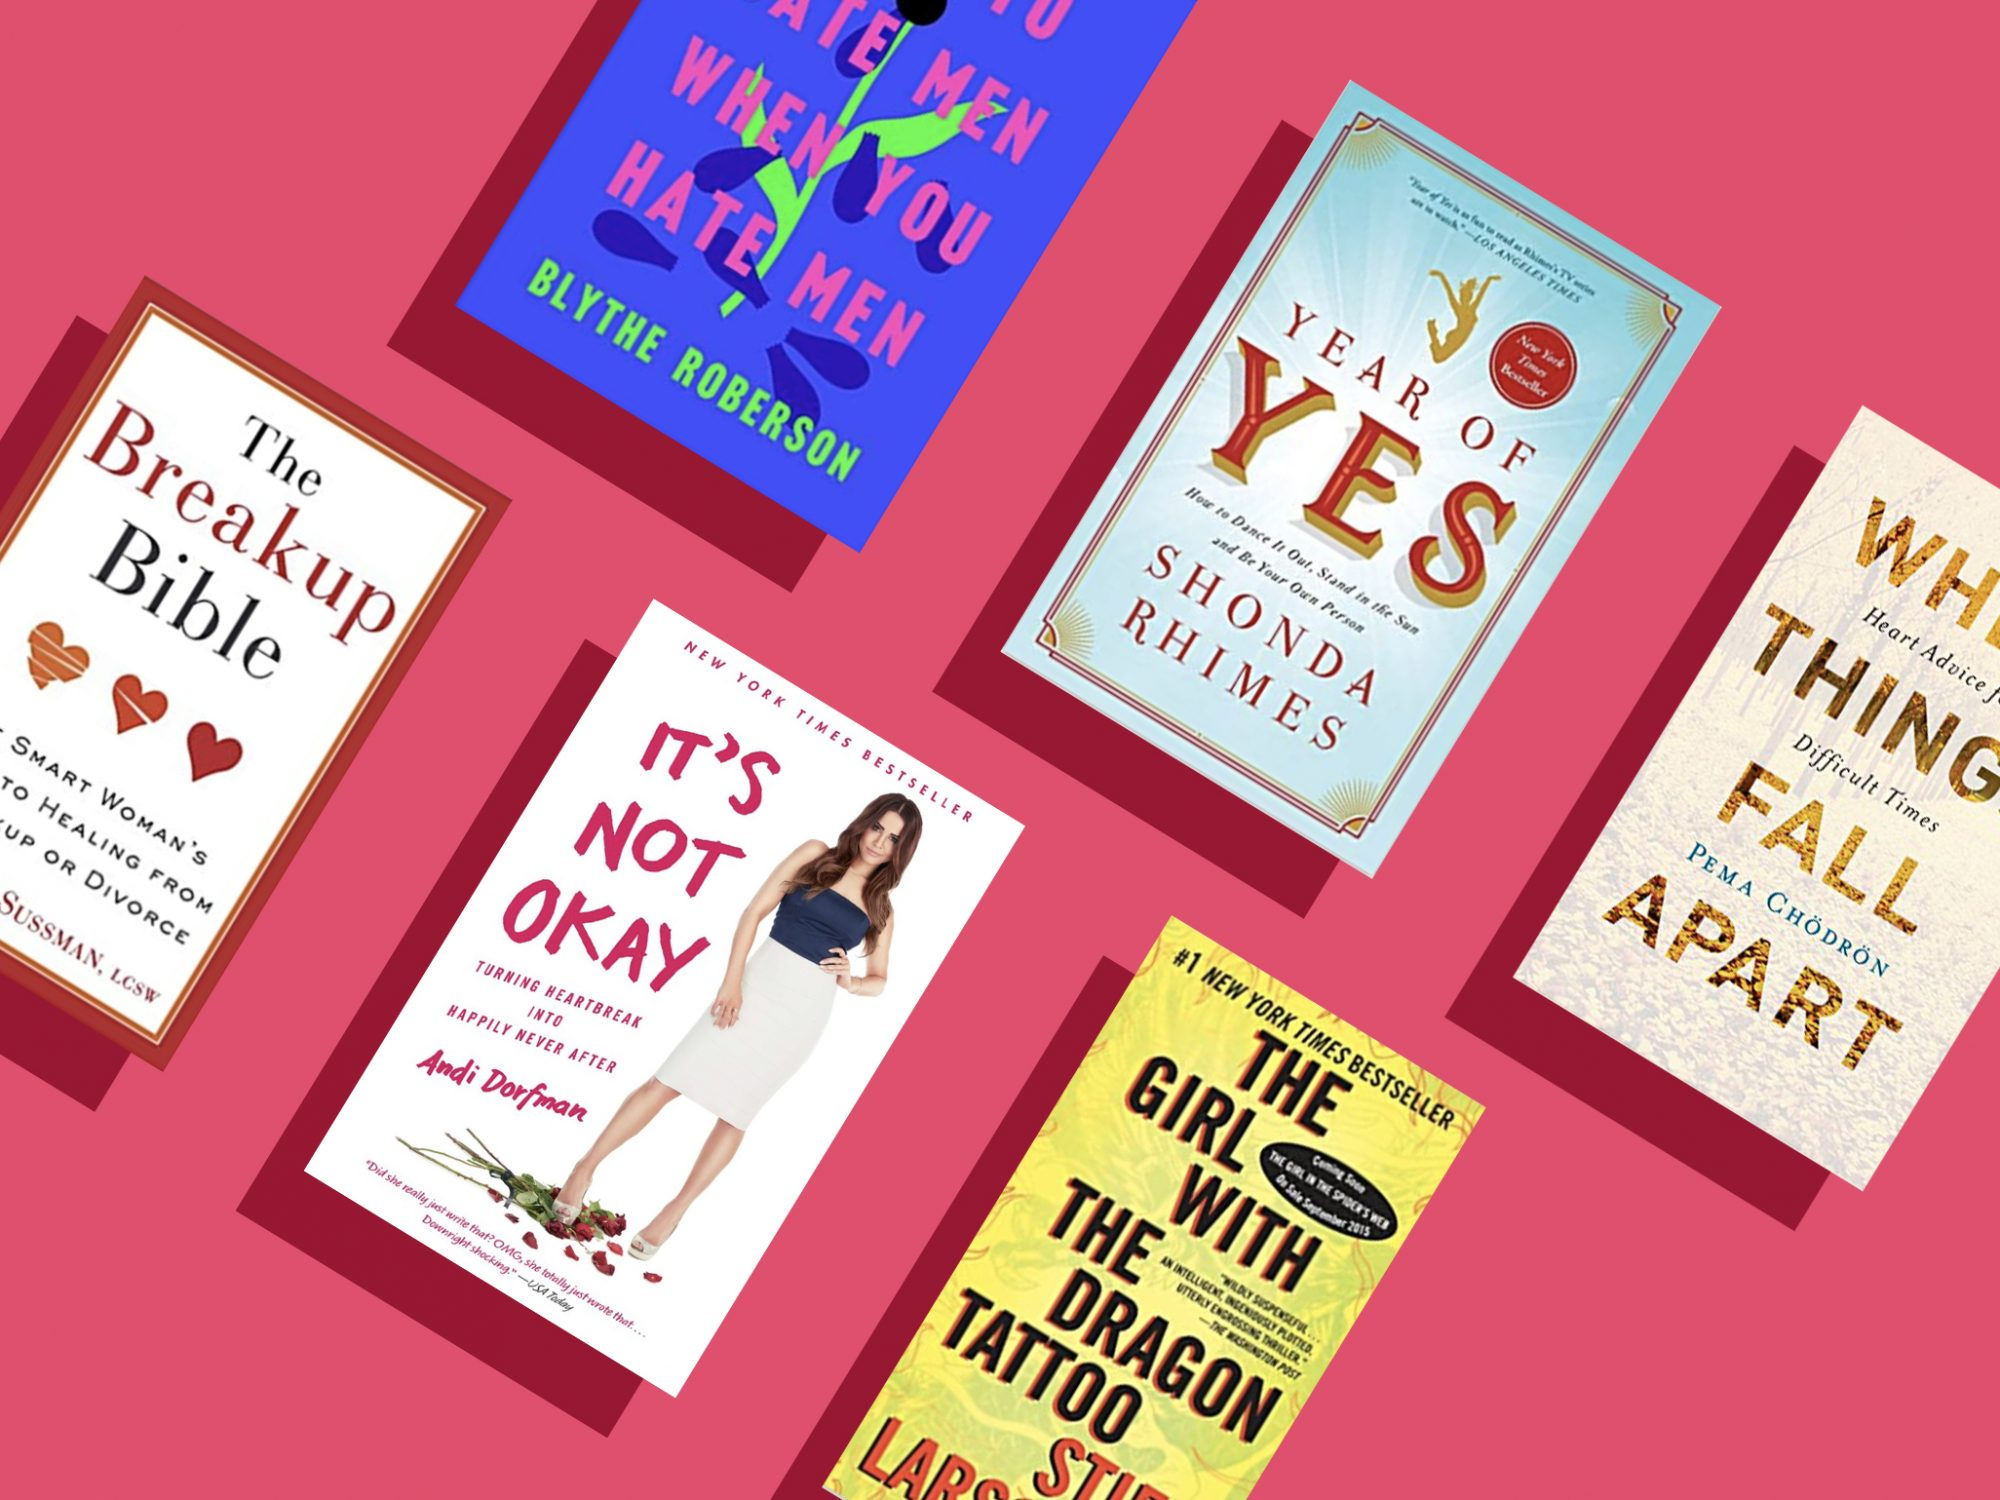 Books to Read While Going Through a Breakup